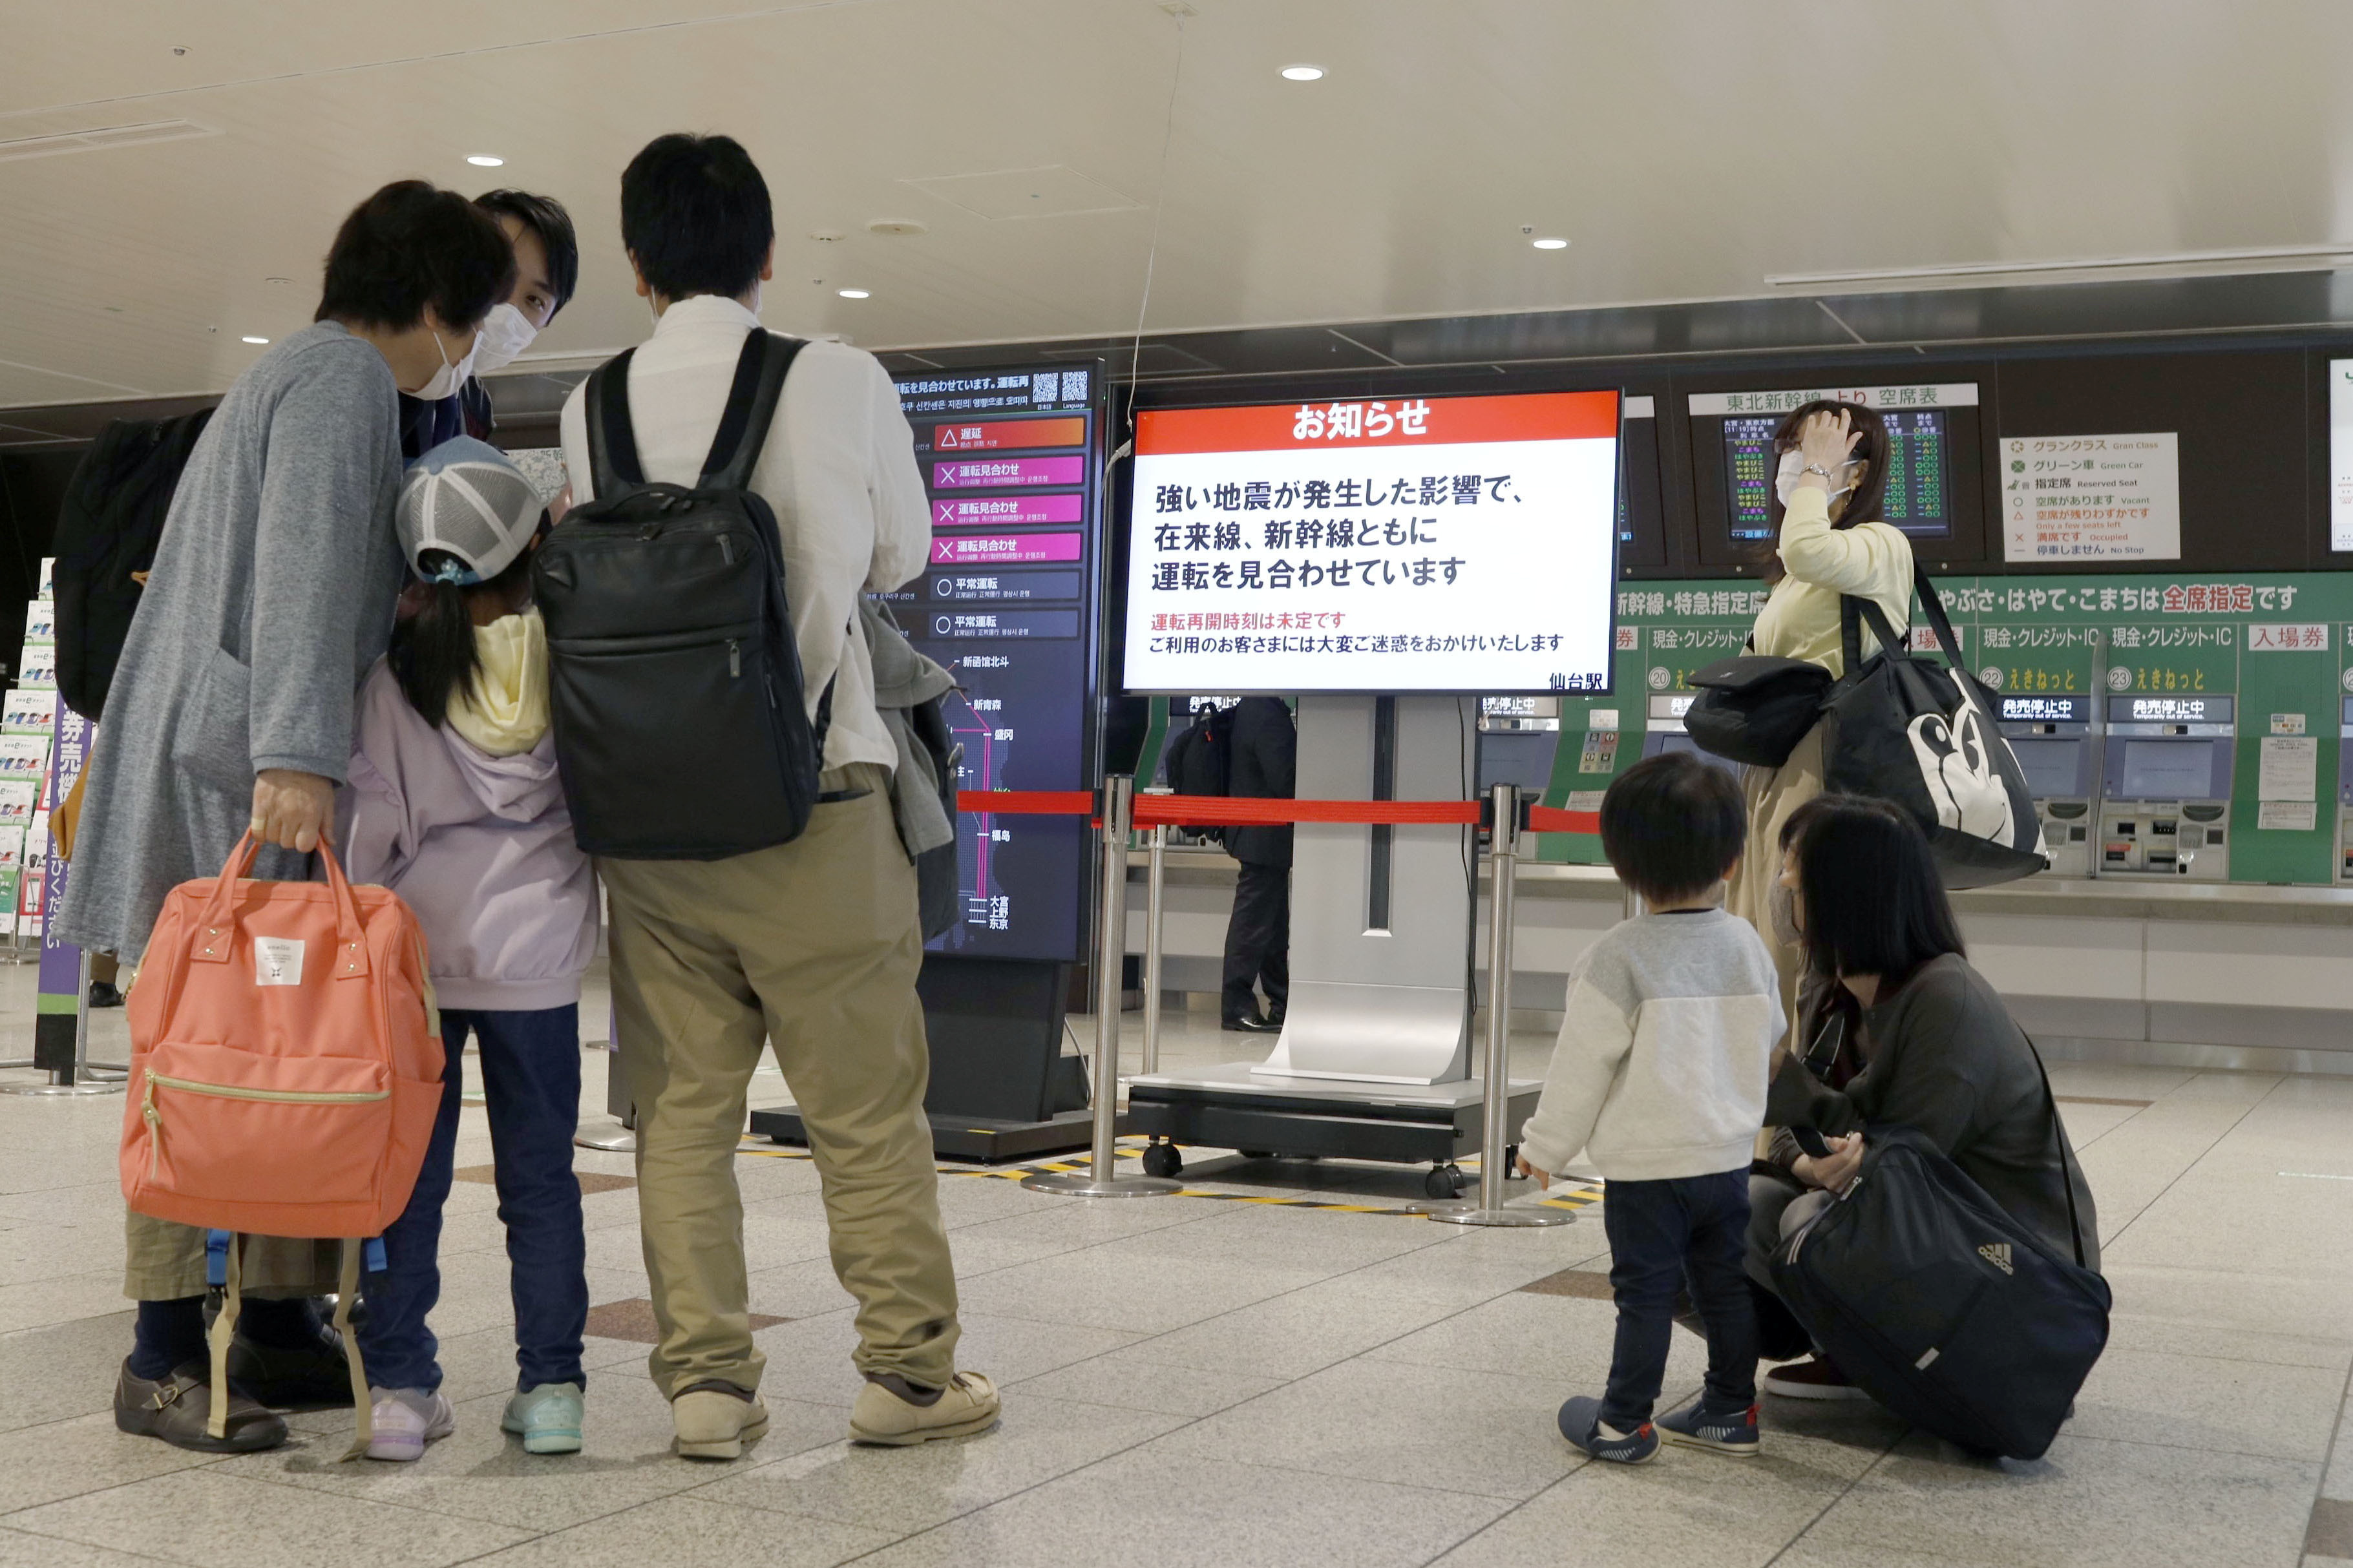 People gather around a ticket gate as train services are suspended following an earthquake in Sendai, Miyagi prefecture, Japan in this photo taken by Kyodo on May 1, 2021.  Mandatory credit Kyodo/via REUTERS